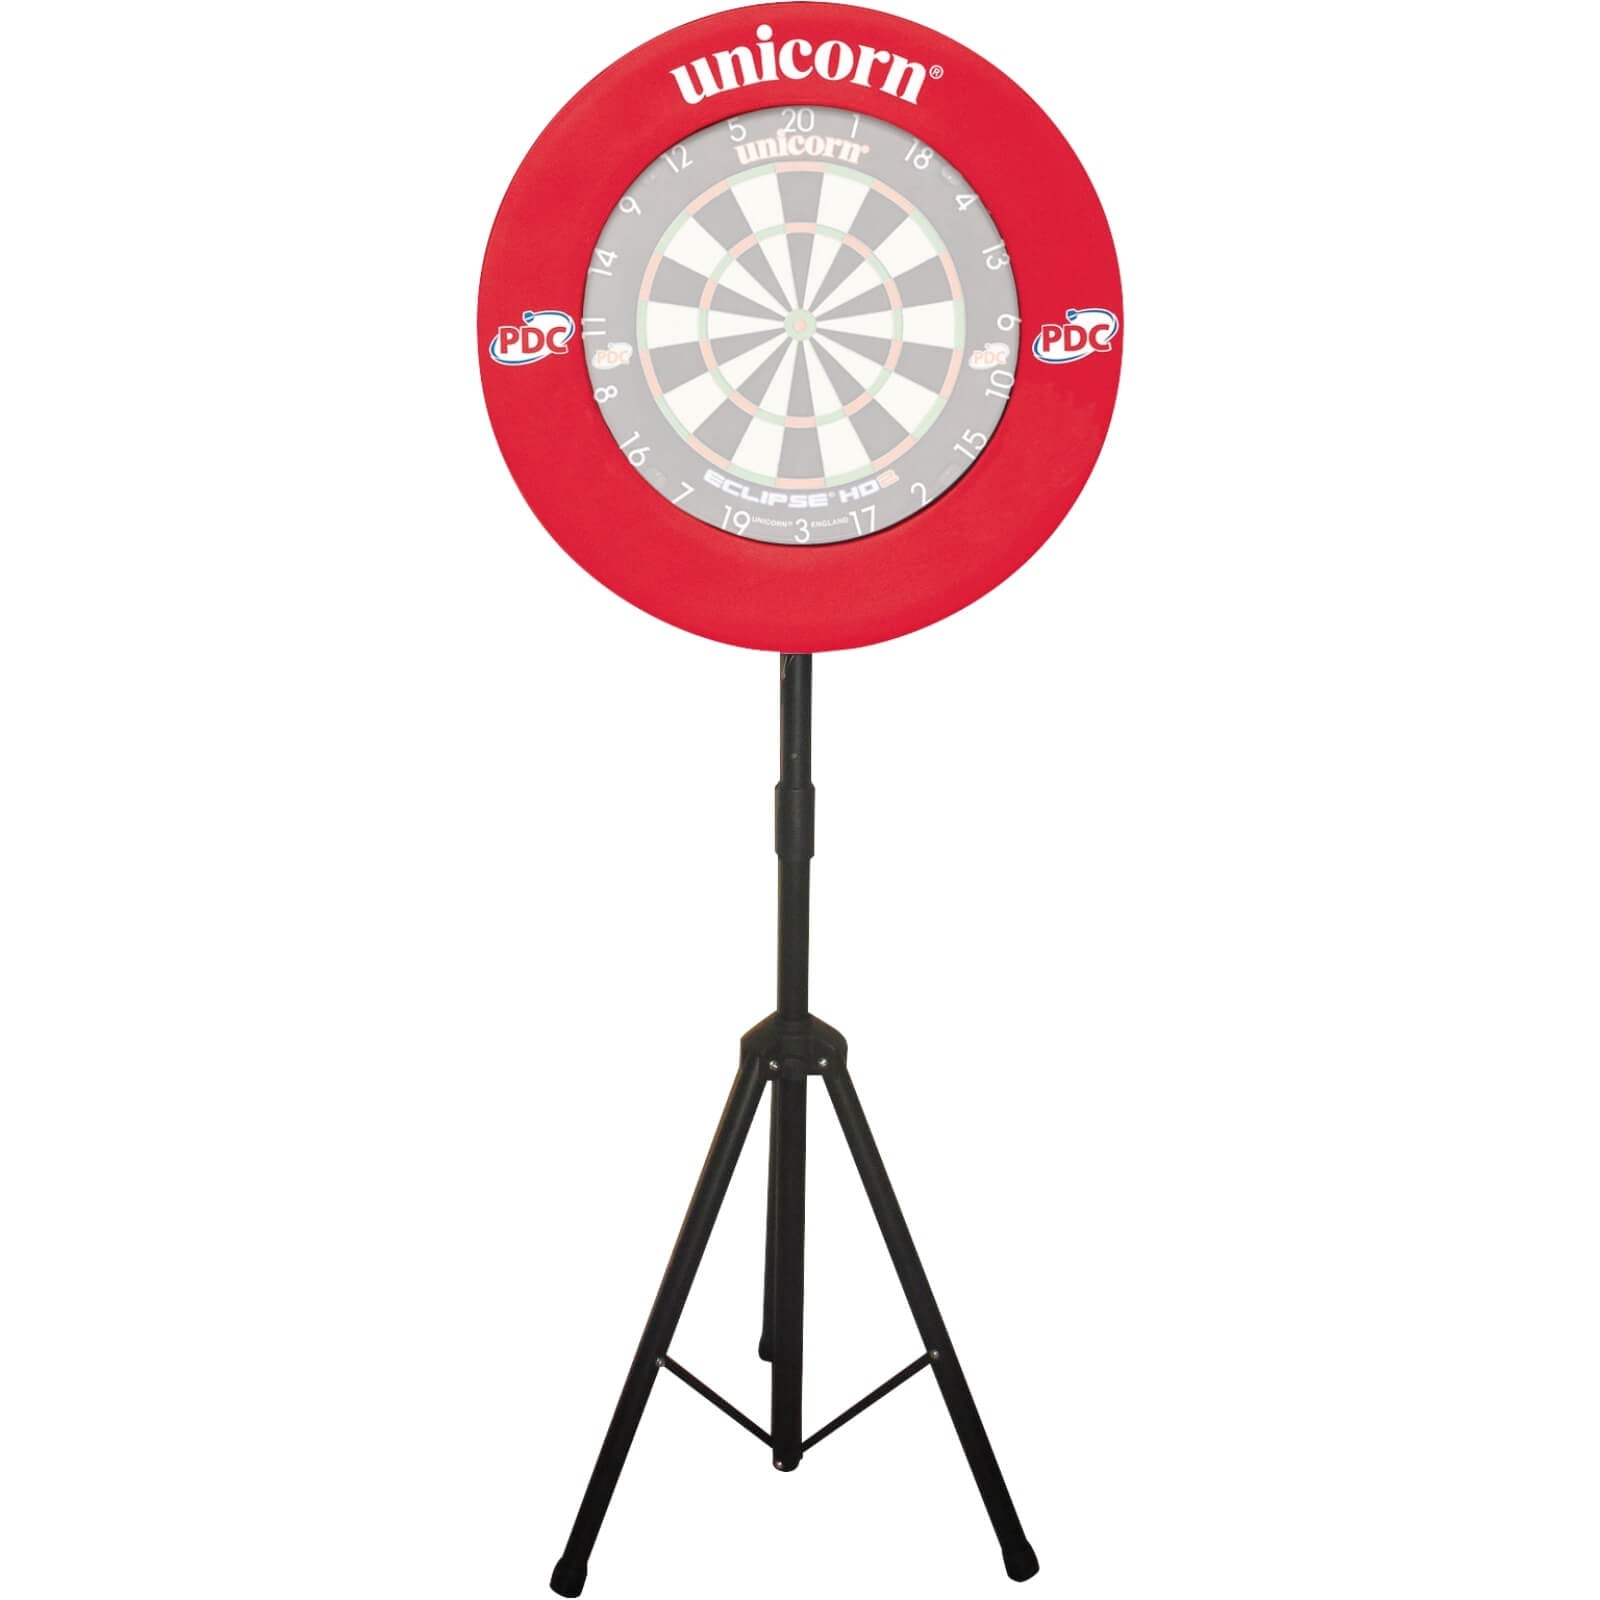 Dartboard Accessories - Unicorn - Dartmate Tri-Stand